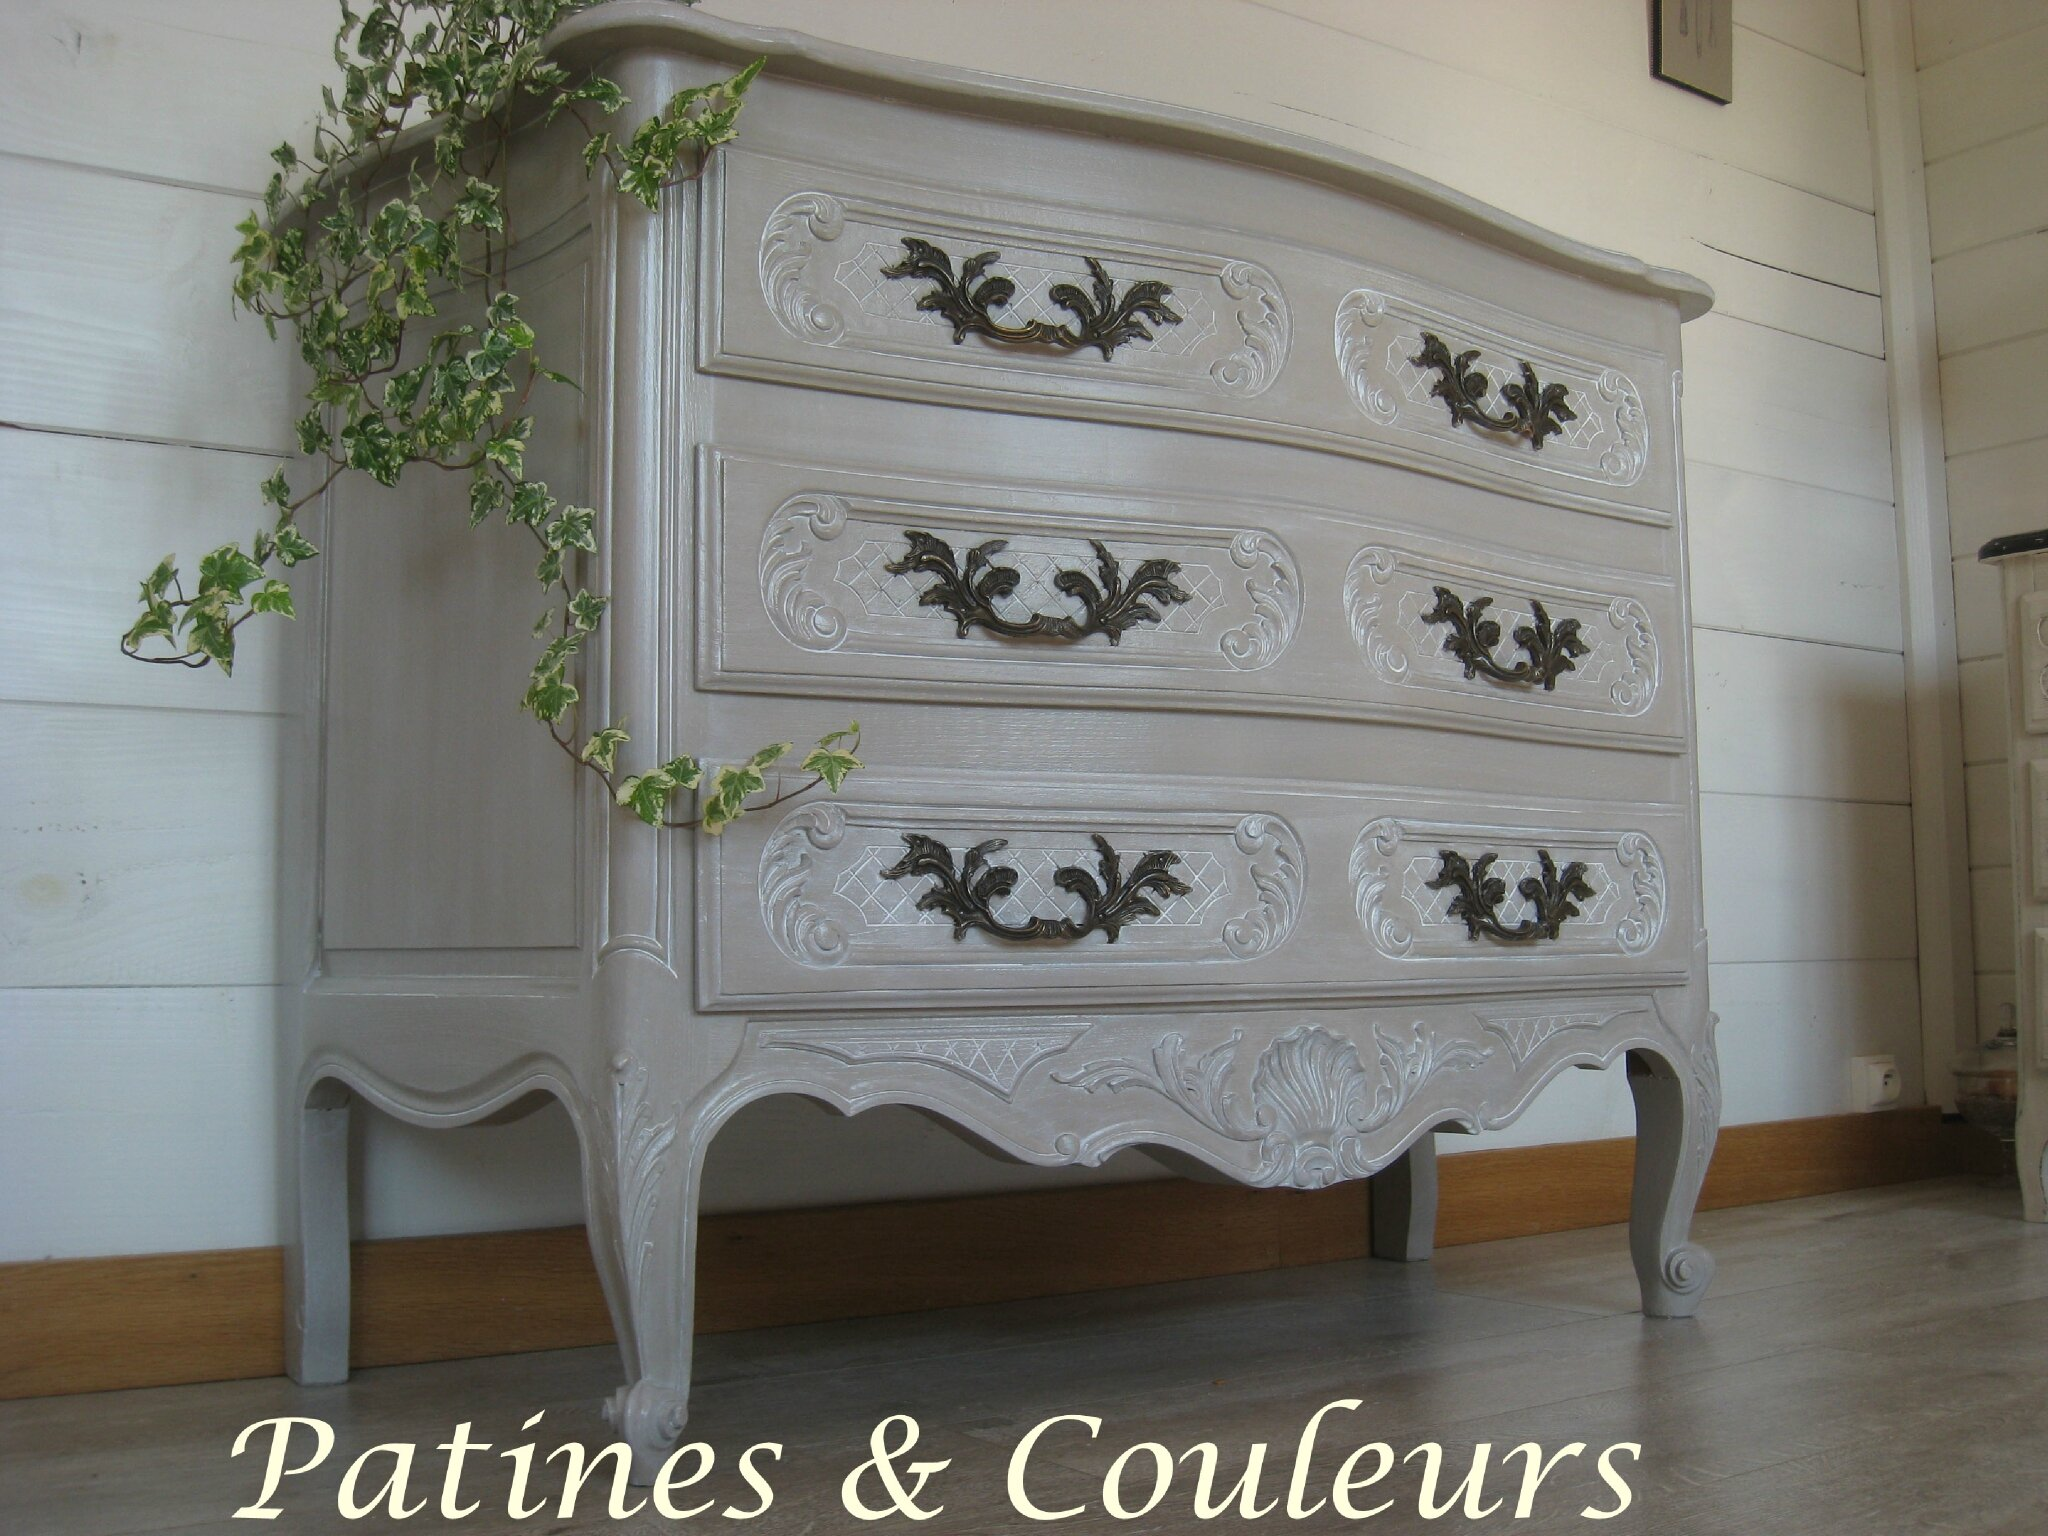 Commode r gence patin e taupe patines couleurs - Commode couleur taupe ...